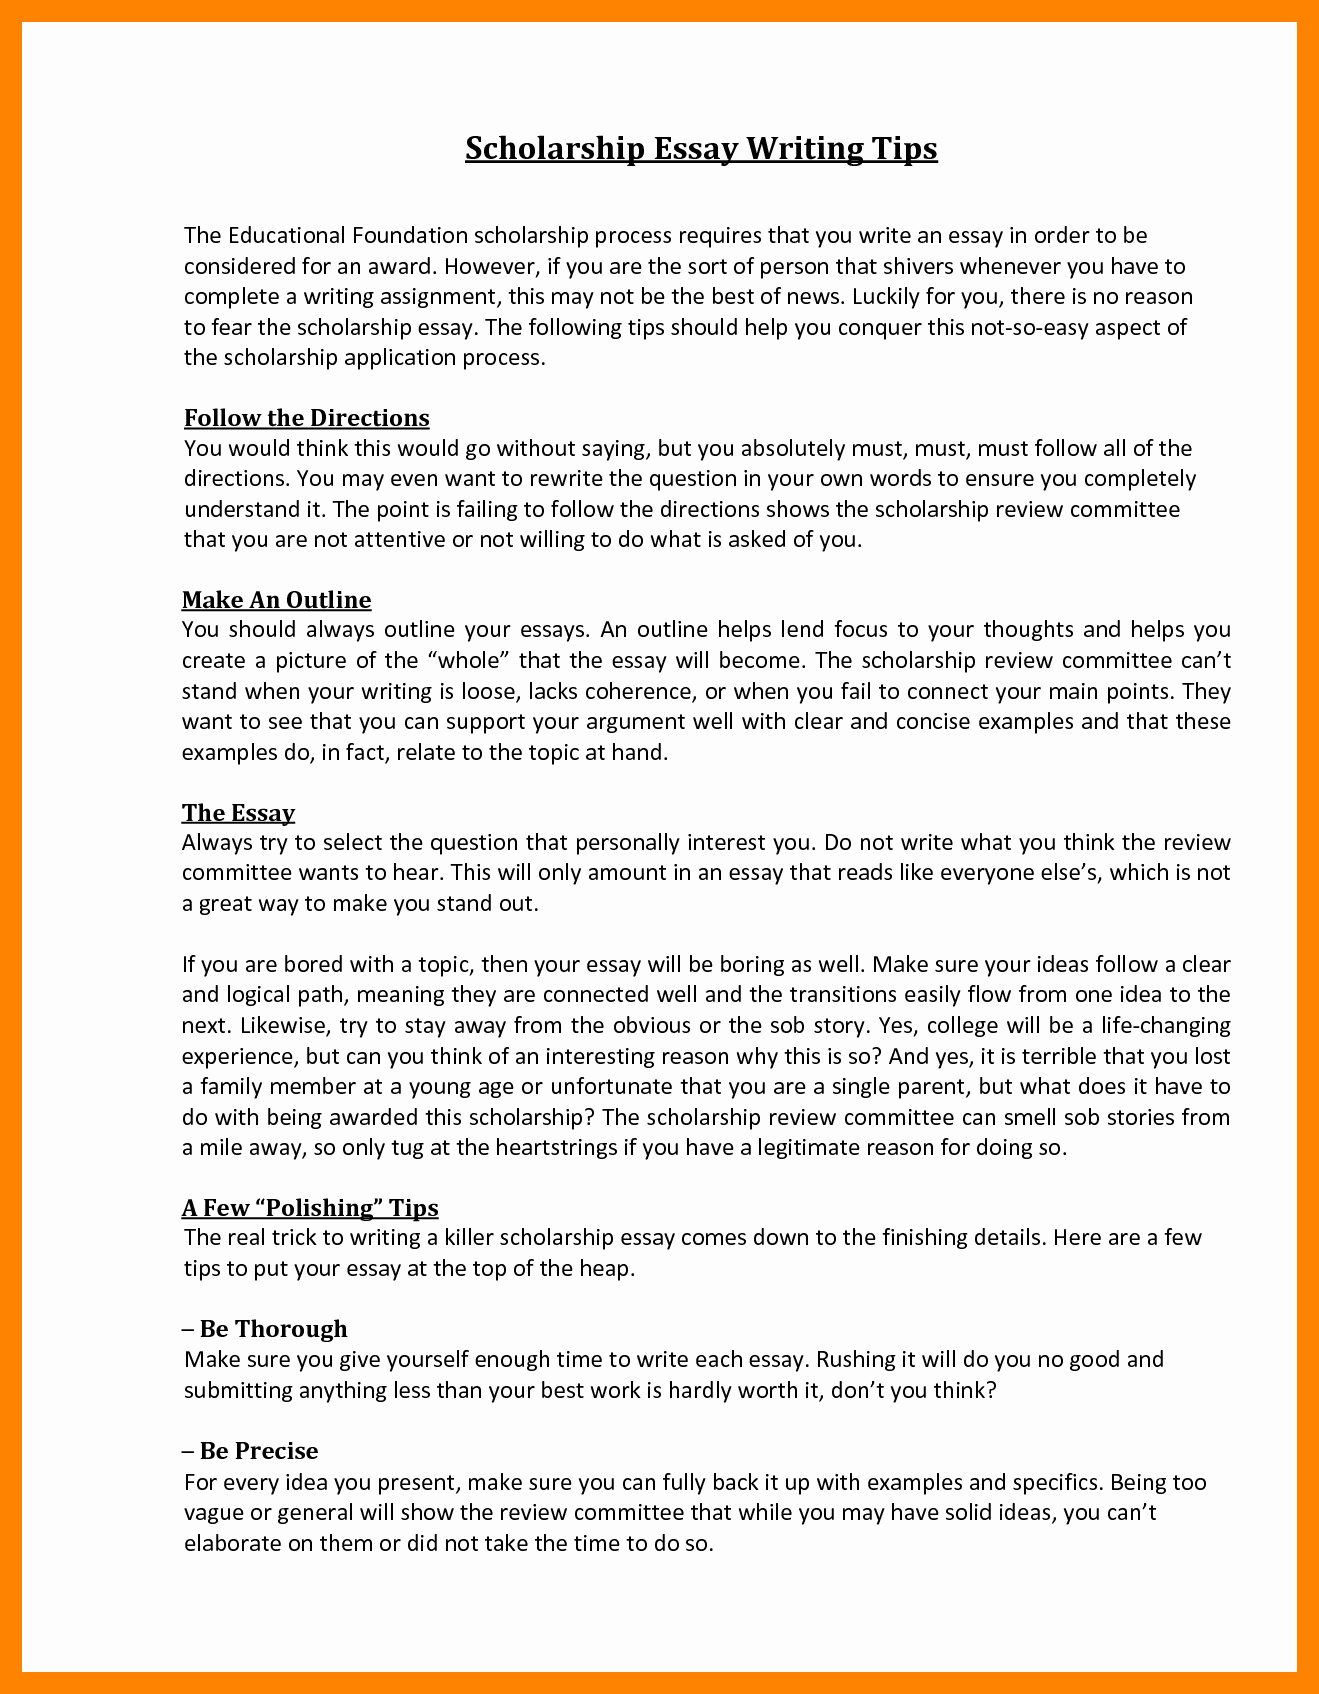 Scholarships Essays Examples About Yourself Awesome 5 why Should You Receive This Scholarship Essay Examples